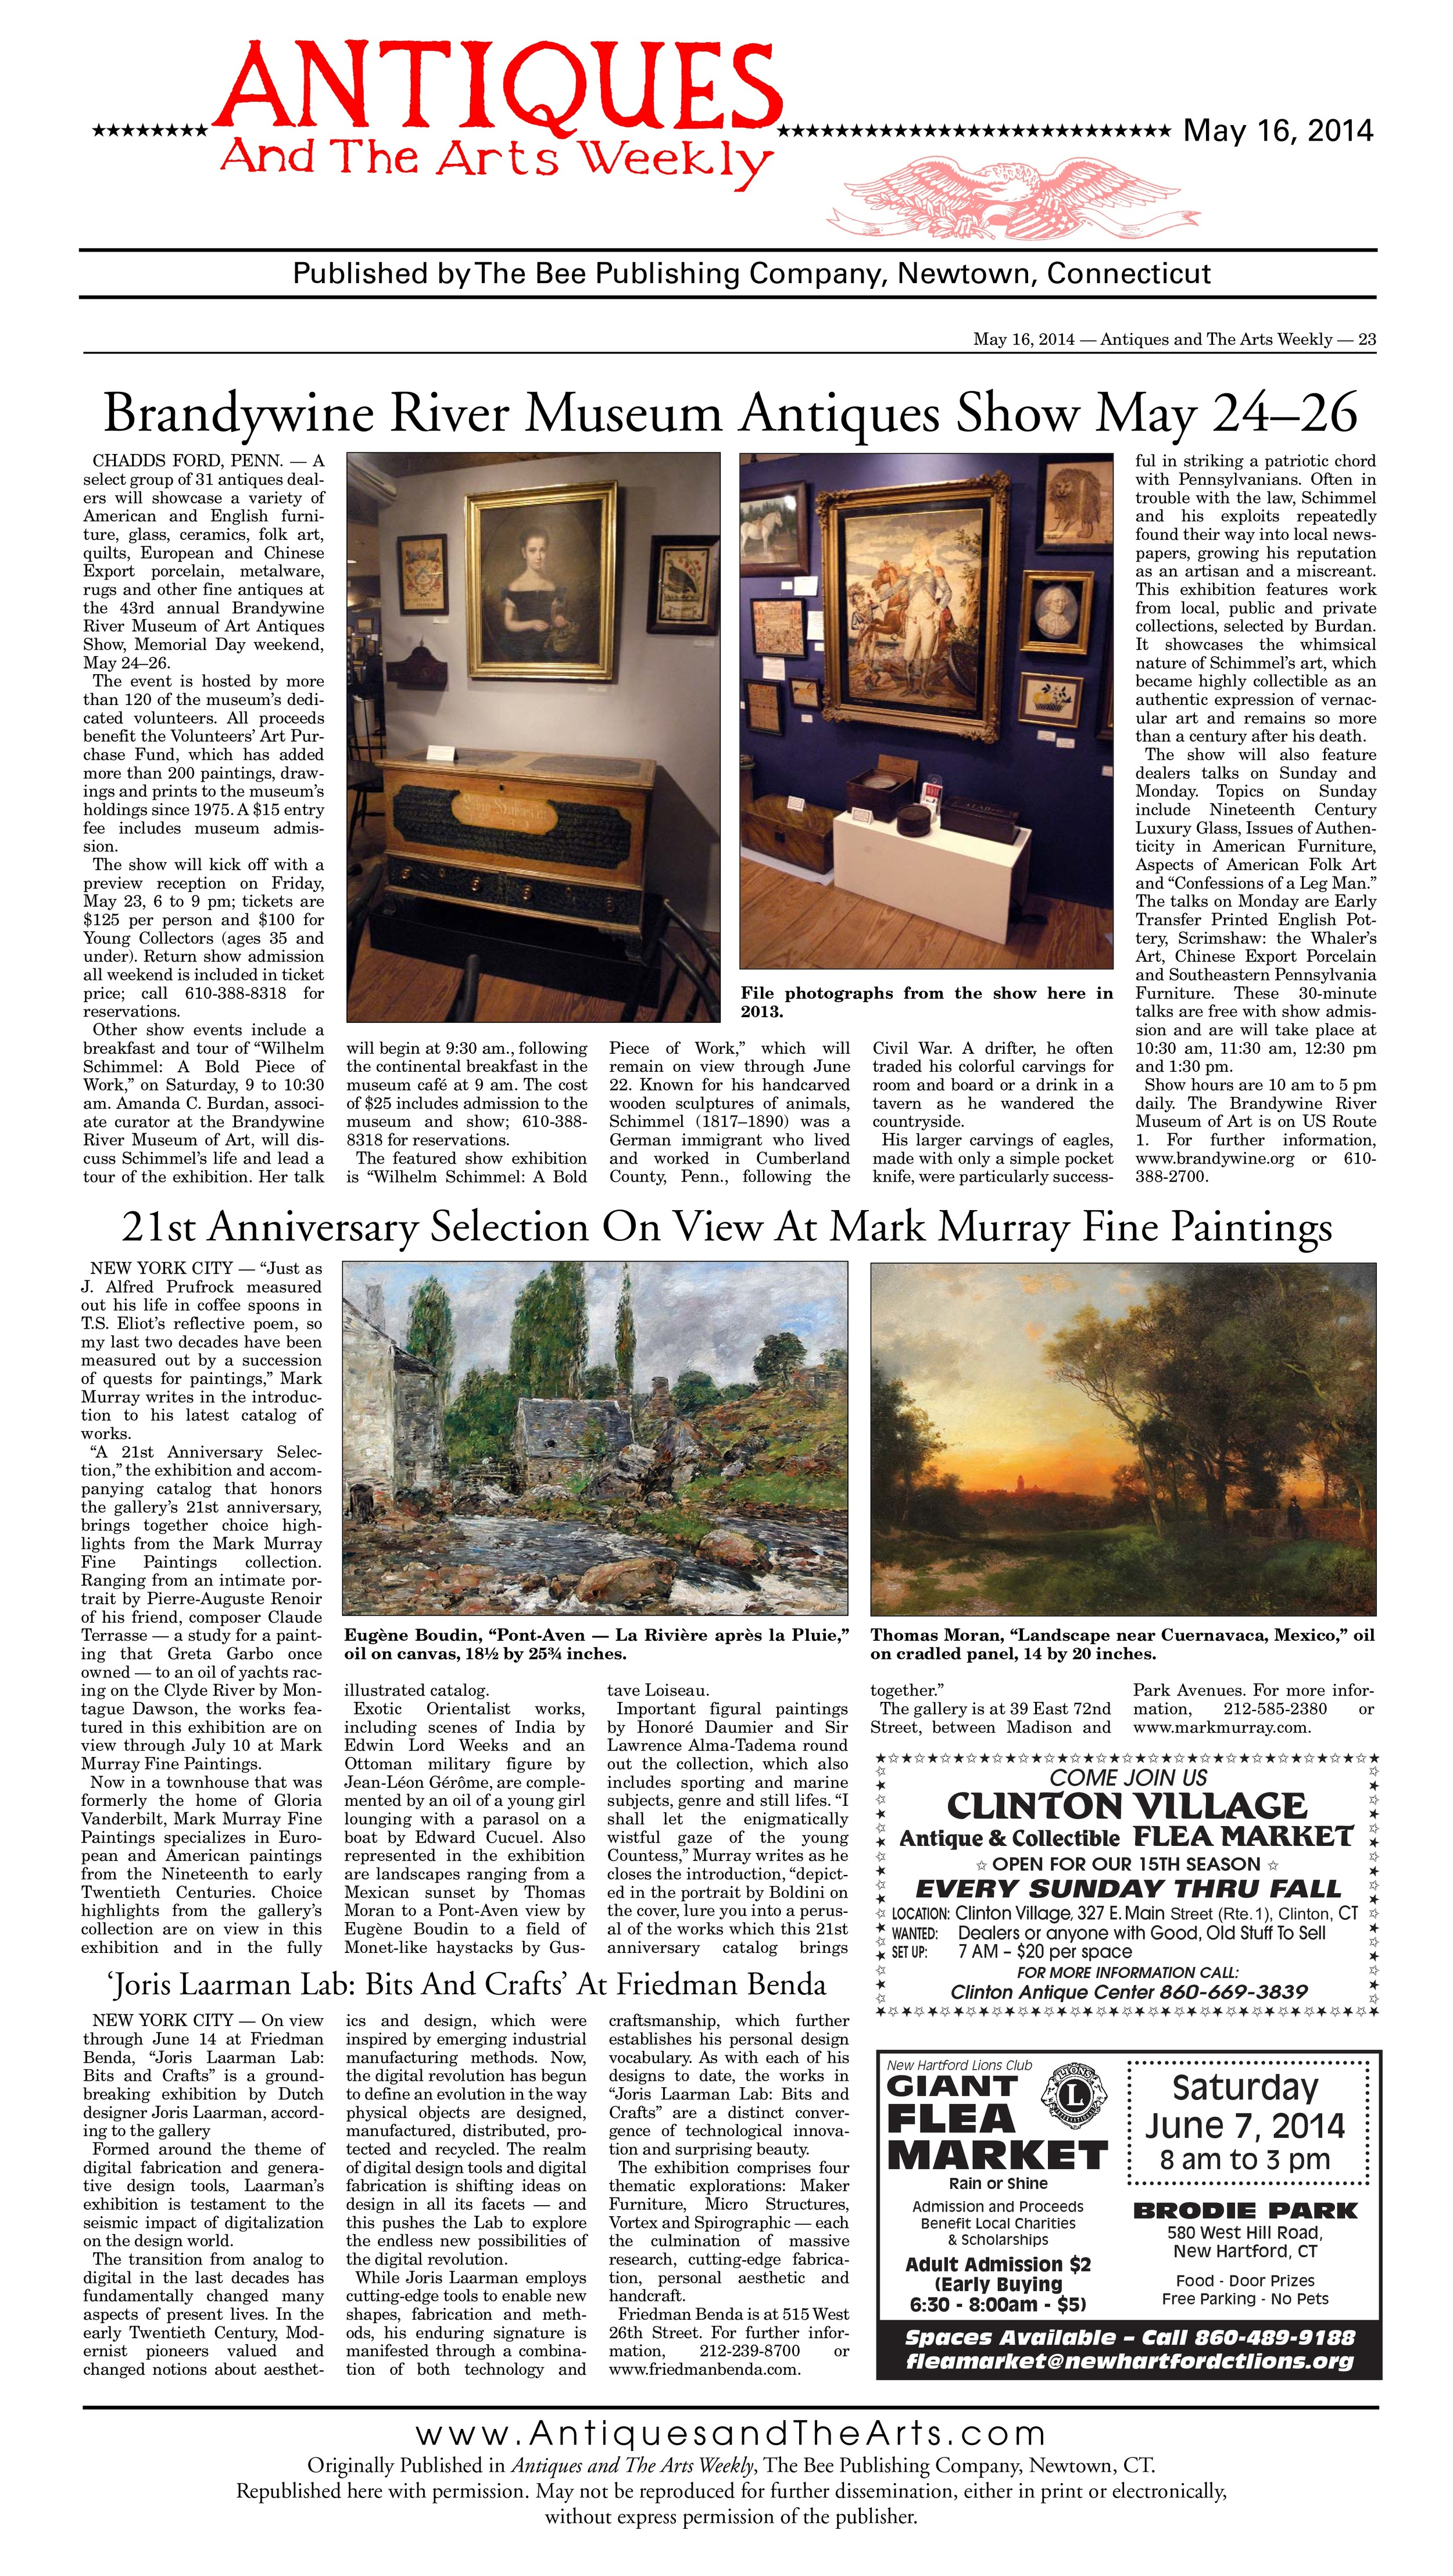 antiques-and-the-arts-weekly-may-16,-2014-x_5370eadc32484.jpg